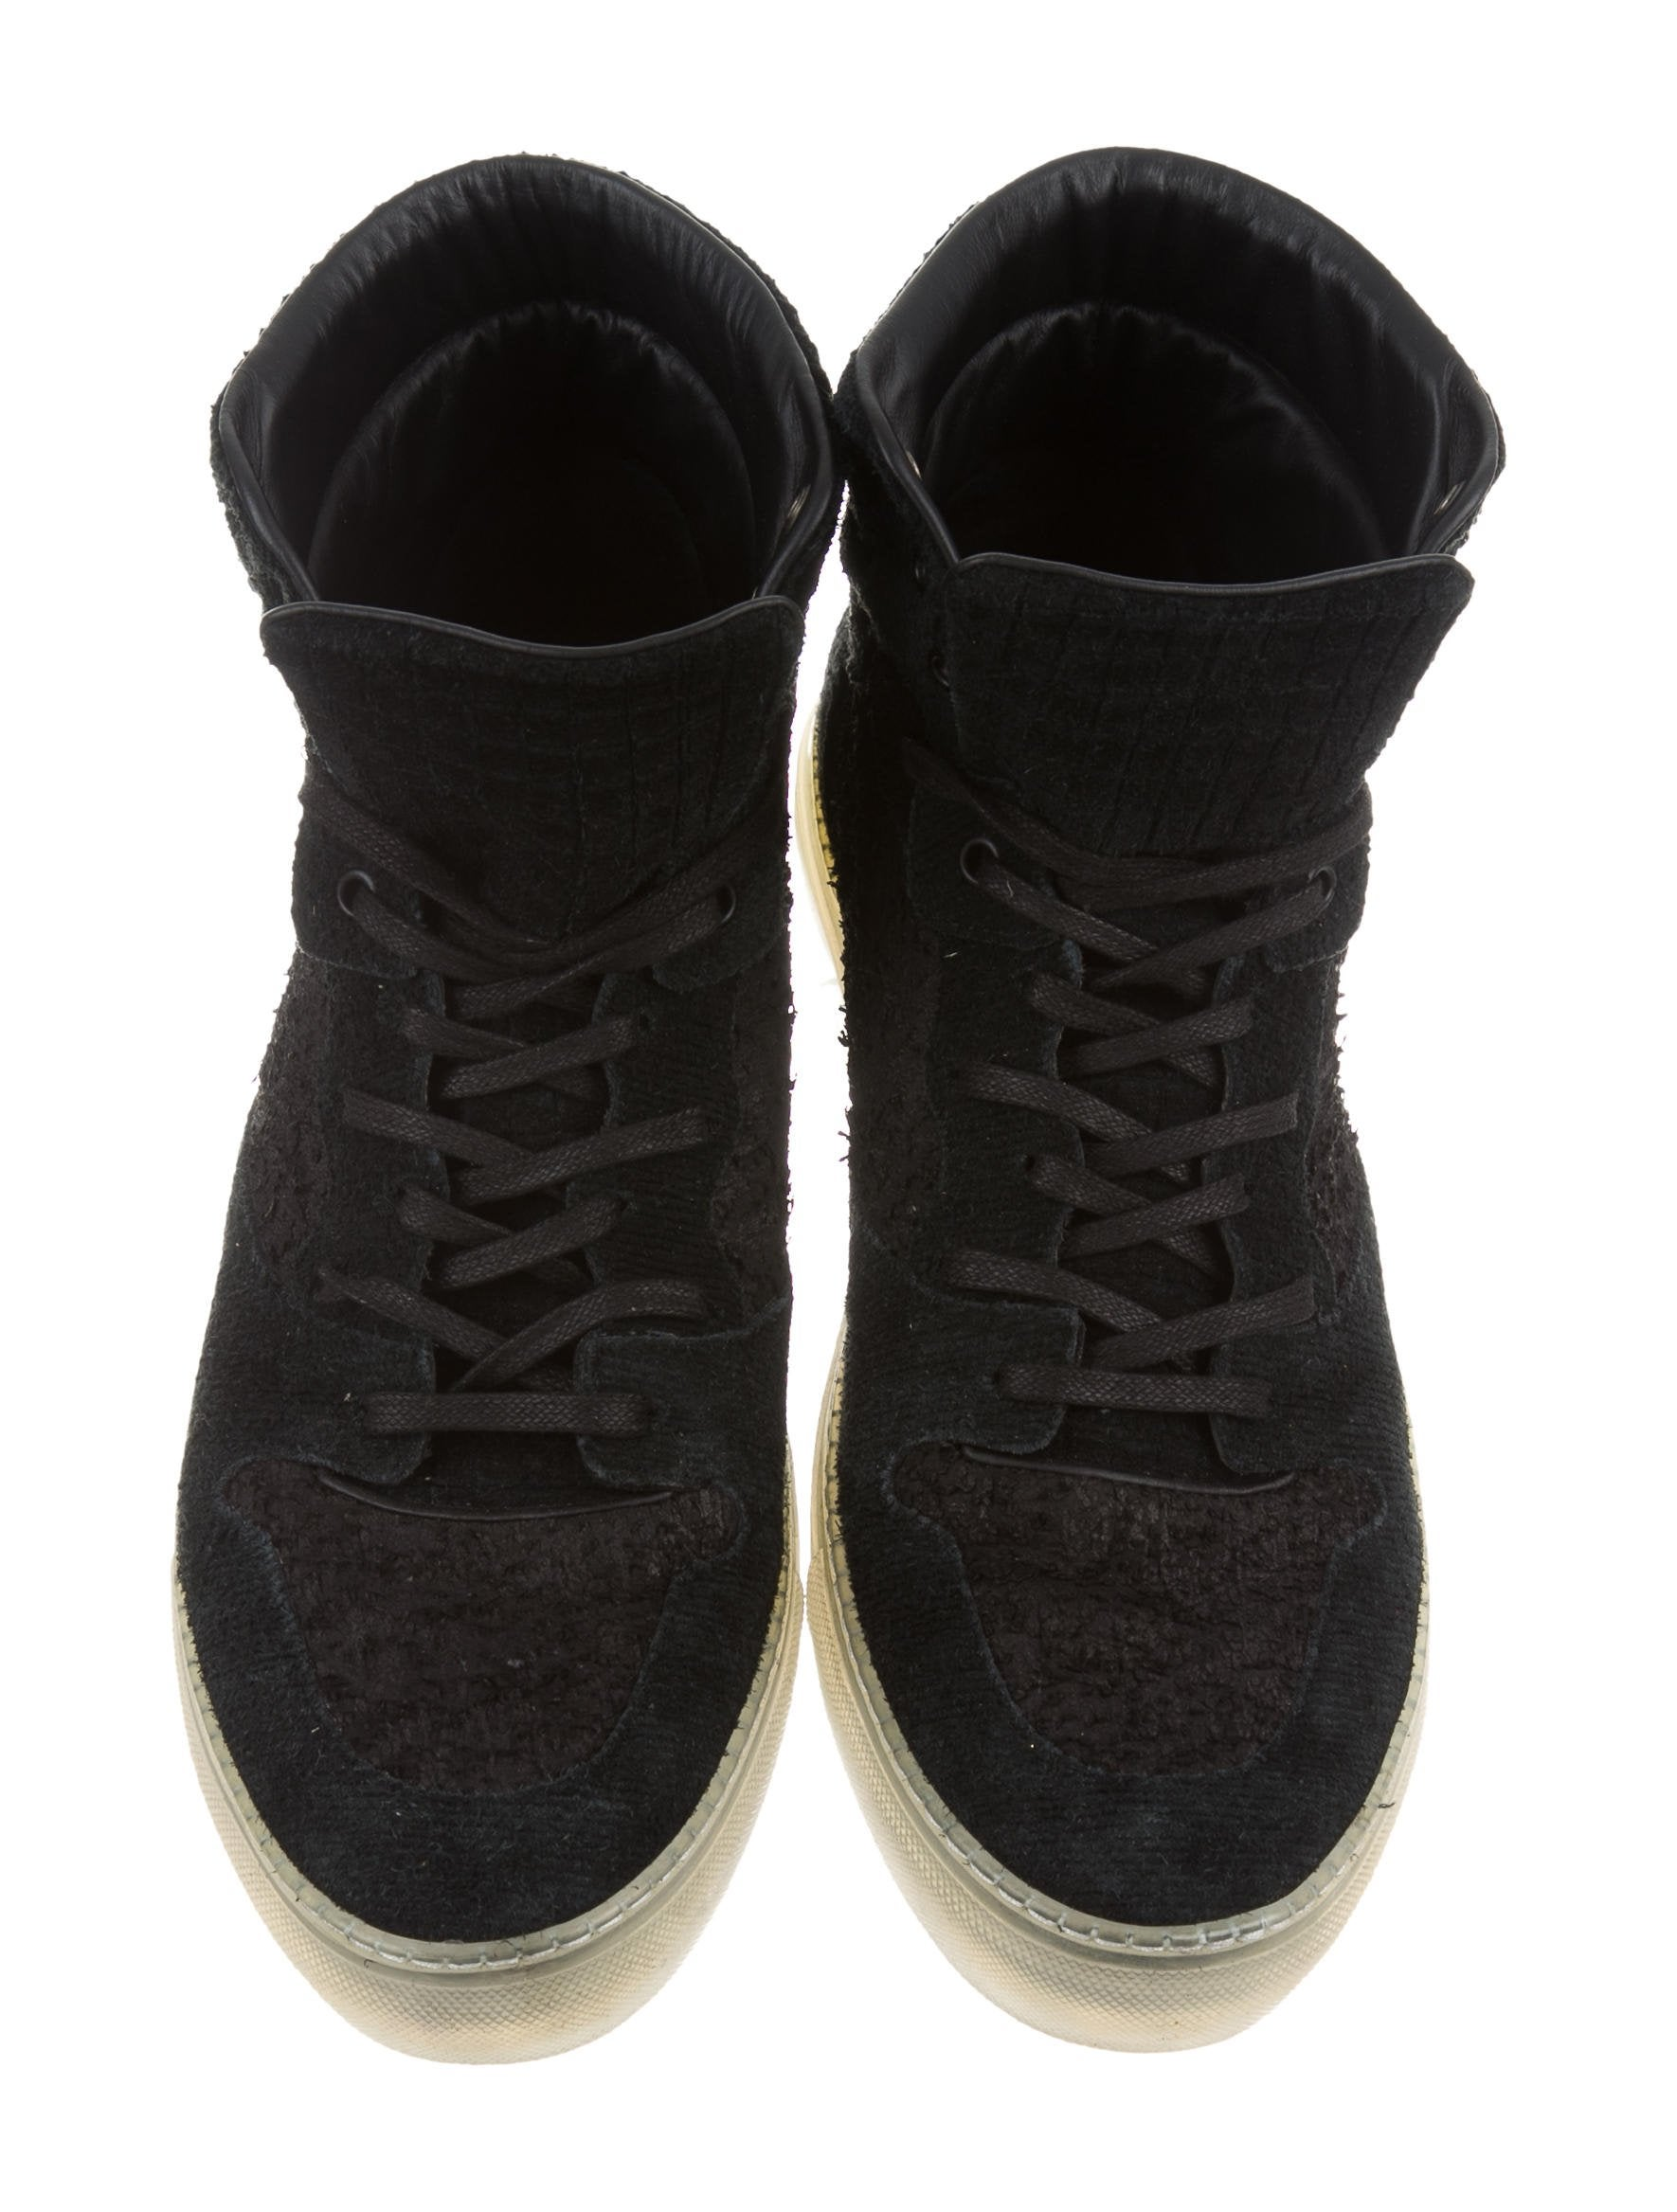 Balenciaga Textured Suede Sneakers - Shoes - BAL55264 | The RealReal